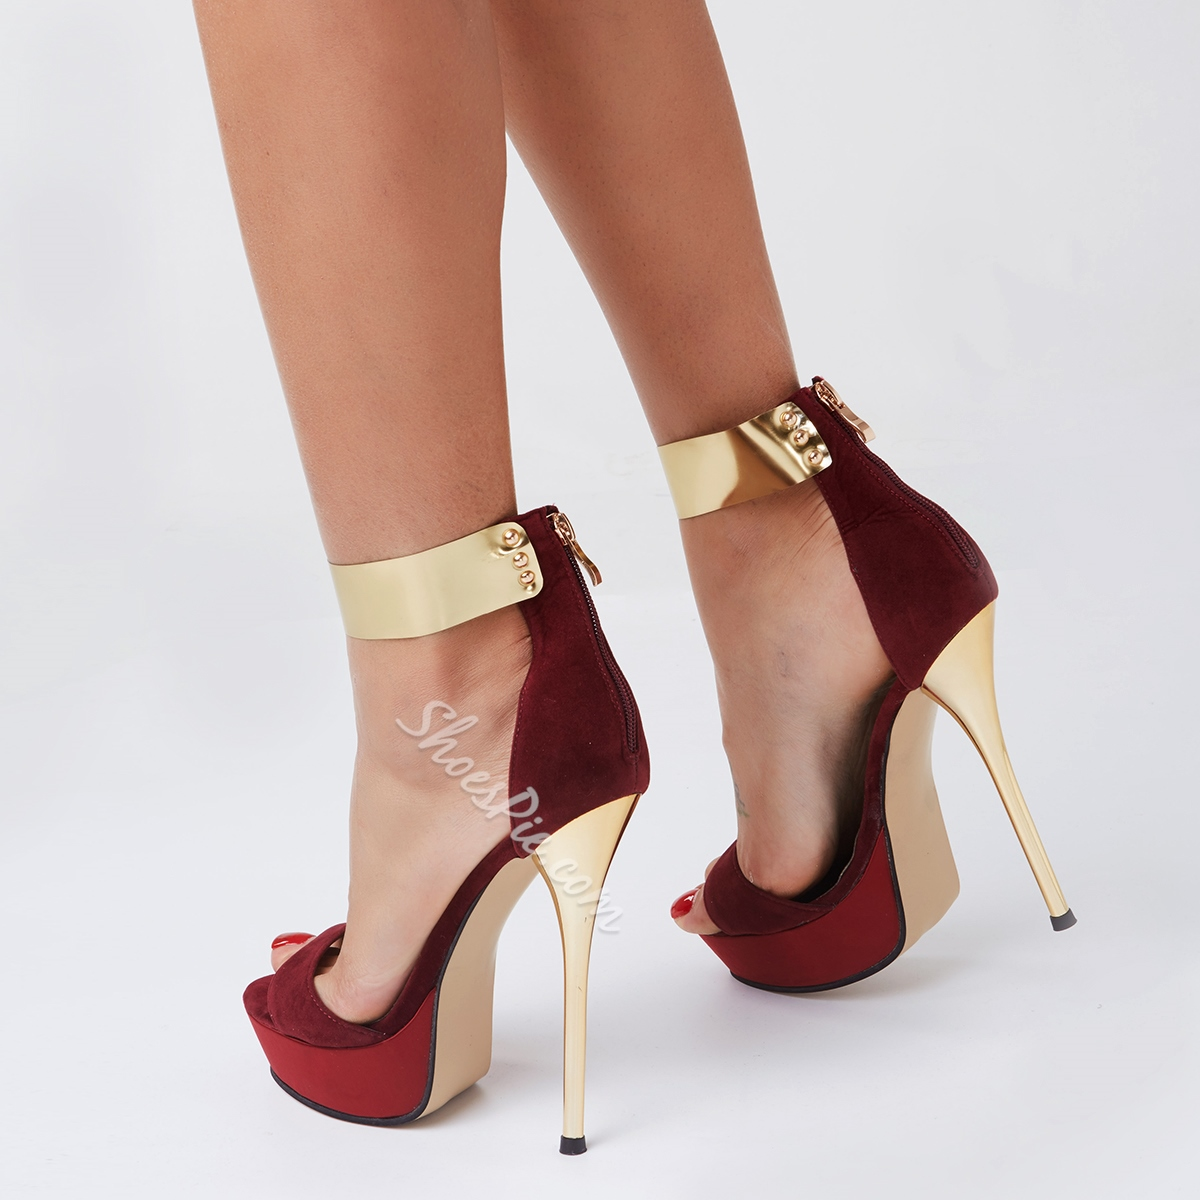 Metal Ankle Wrap High Stiletto Heel Dress Sandals